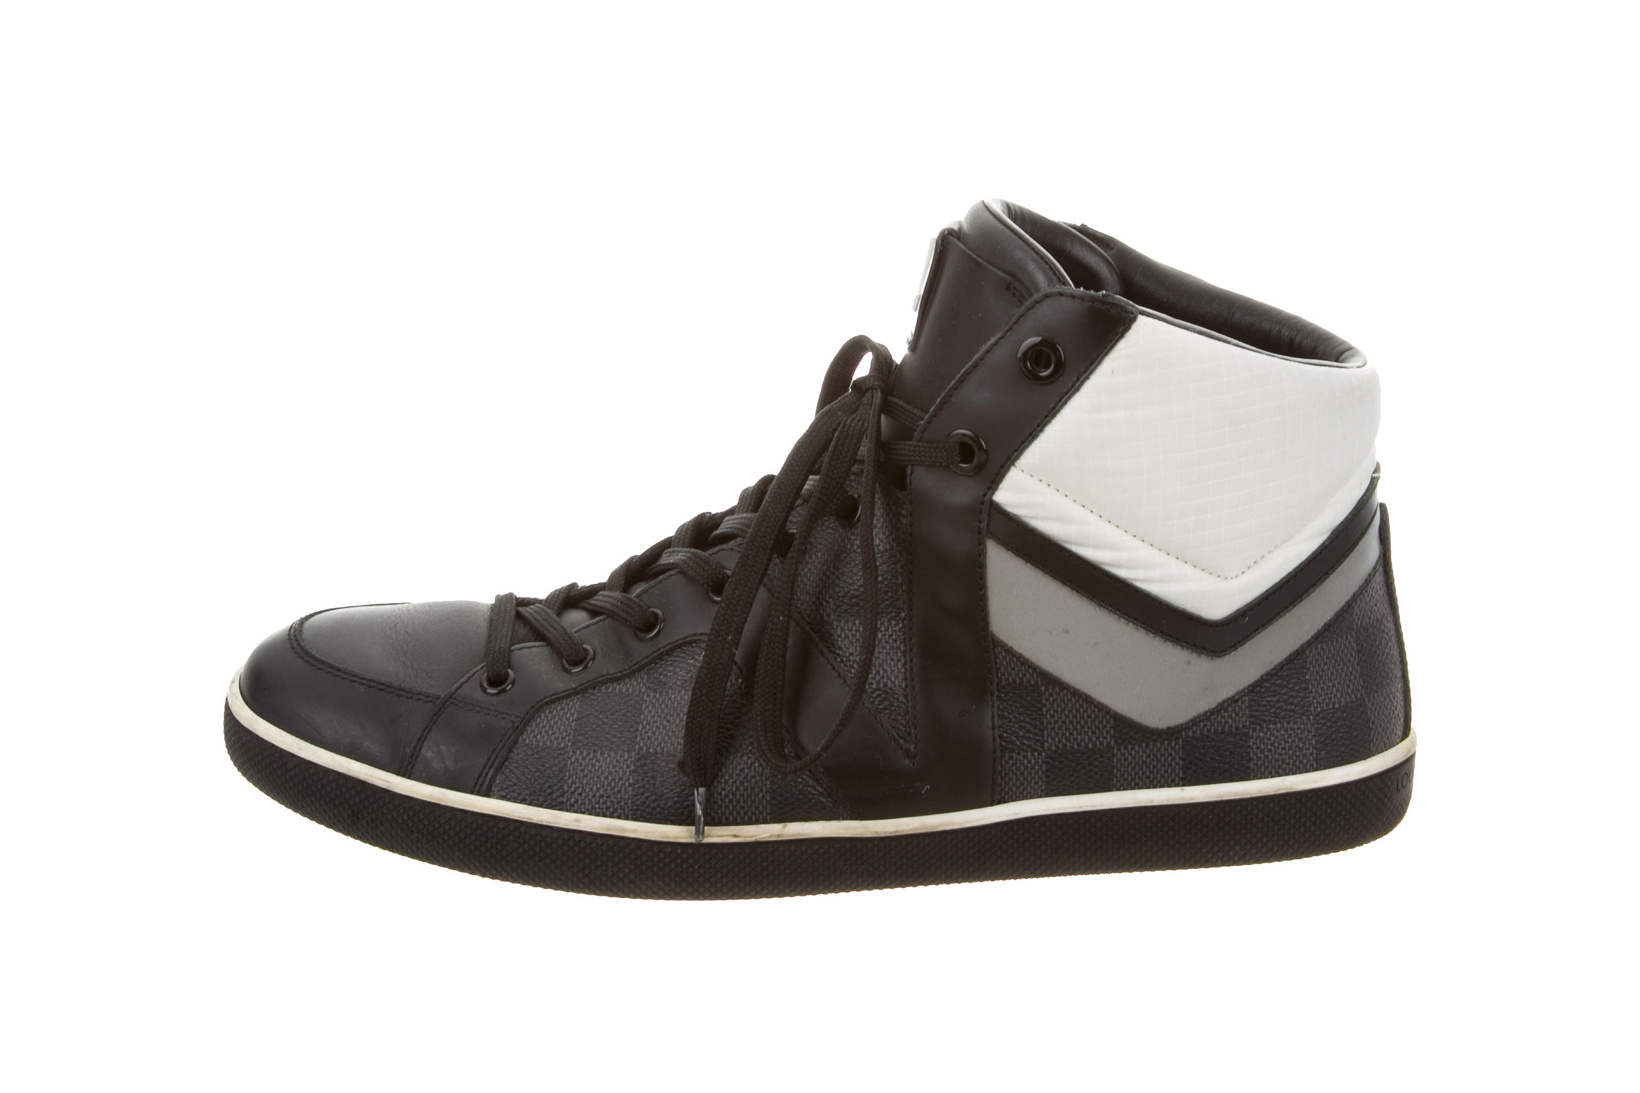 silicon-valley-louis-vuitton-damier-high-top-the-realreal-report-1